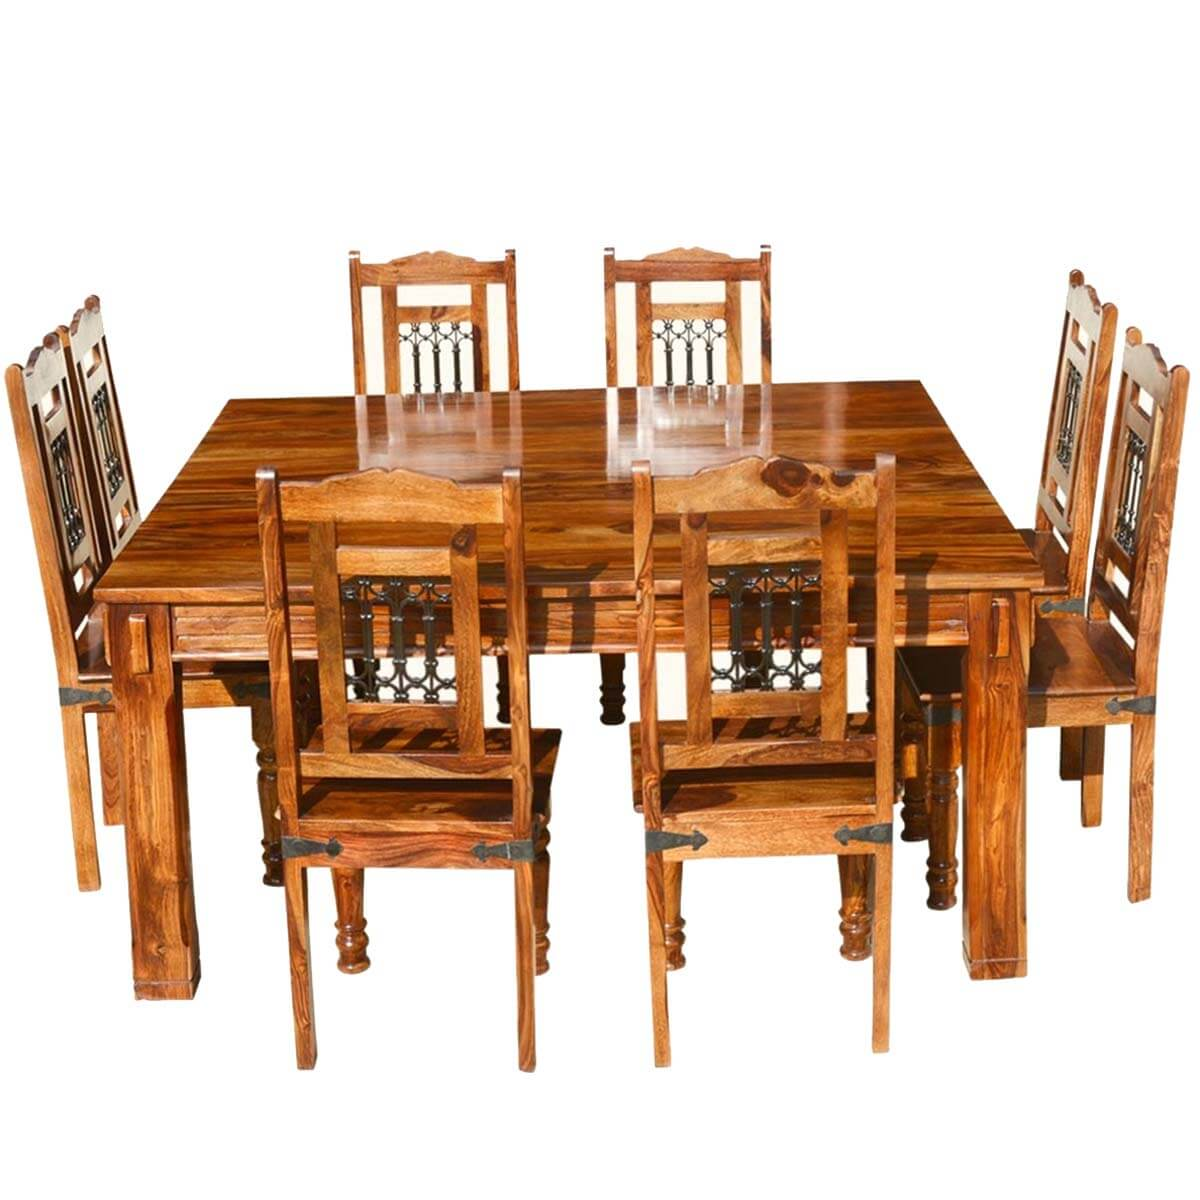 Transitional Dining Room Chairs Transitional Solid Wood Rustic Square Dining Table Chairs Set